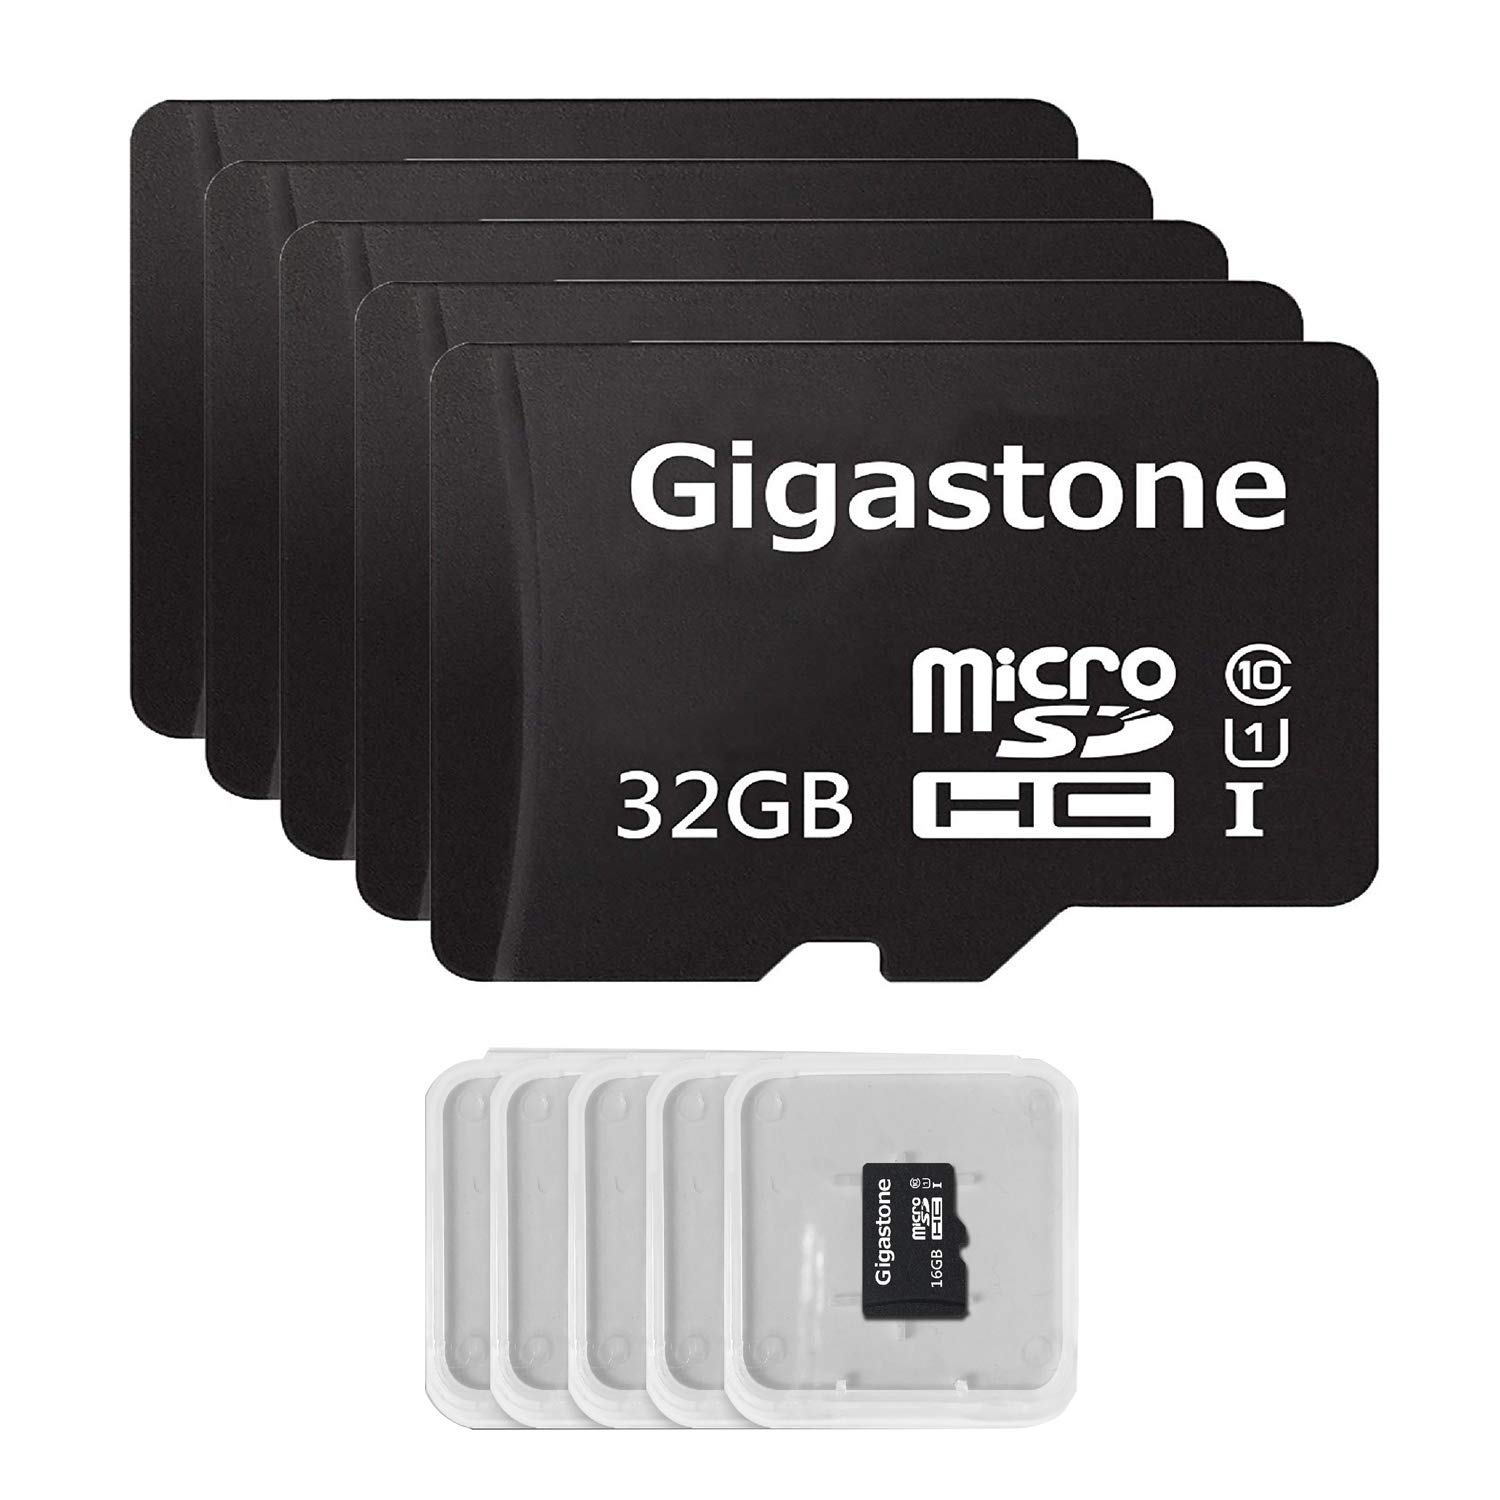 Gigastone Micro SD Card 32GB 5-Pack Micro SDHC U1 C10 High Speed Memory Card Class10 Uhs Full HD Video Nintendo Gopro Camera Samsung Canon Nikon DJI Drone - Black by Gigastone